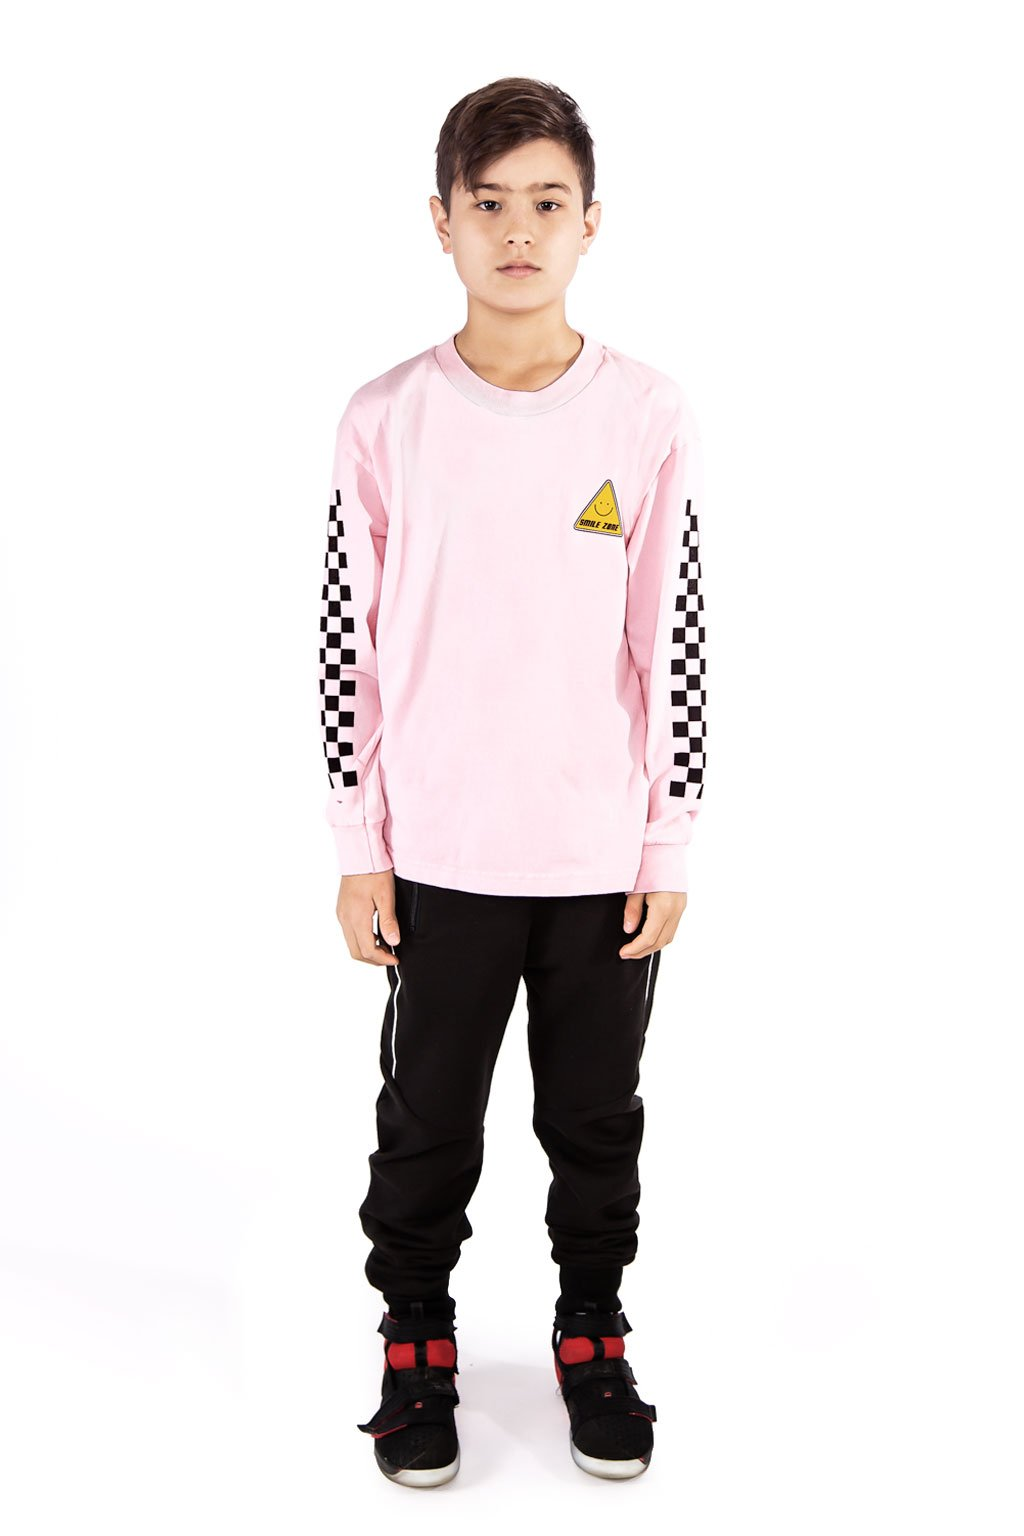 Pink Smile Zone Long Sleeve T-shirt - Port 213.com